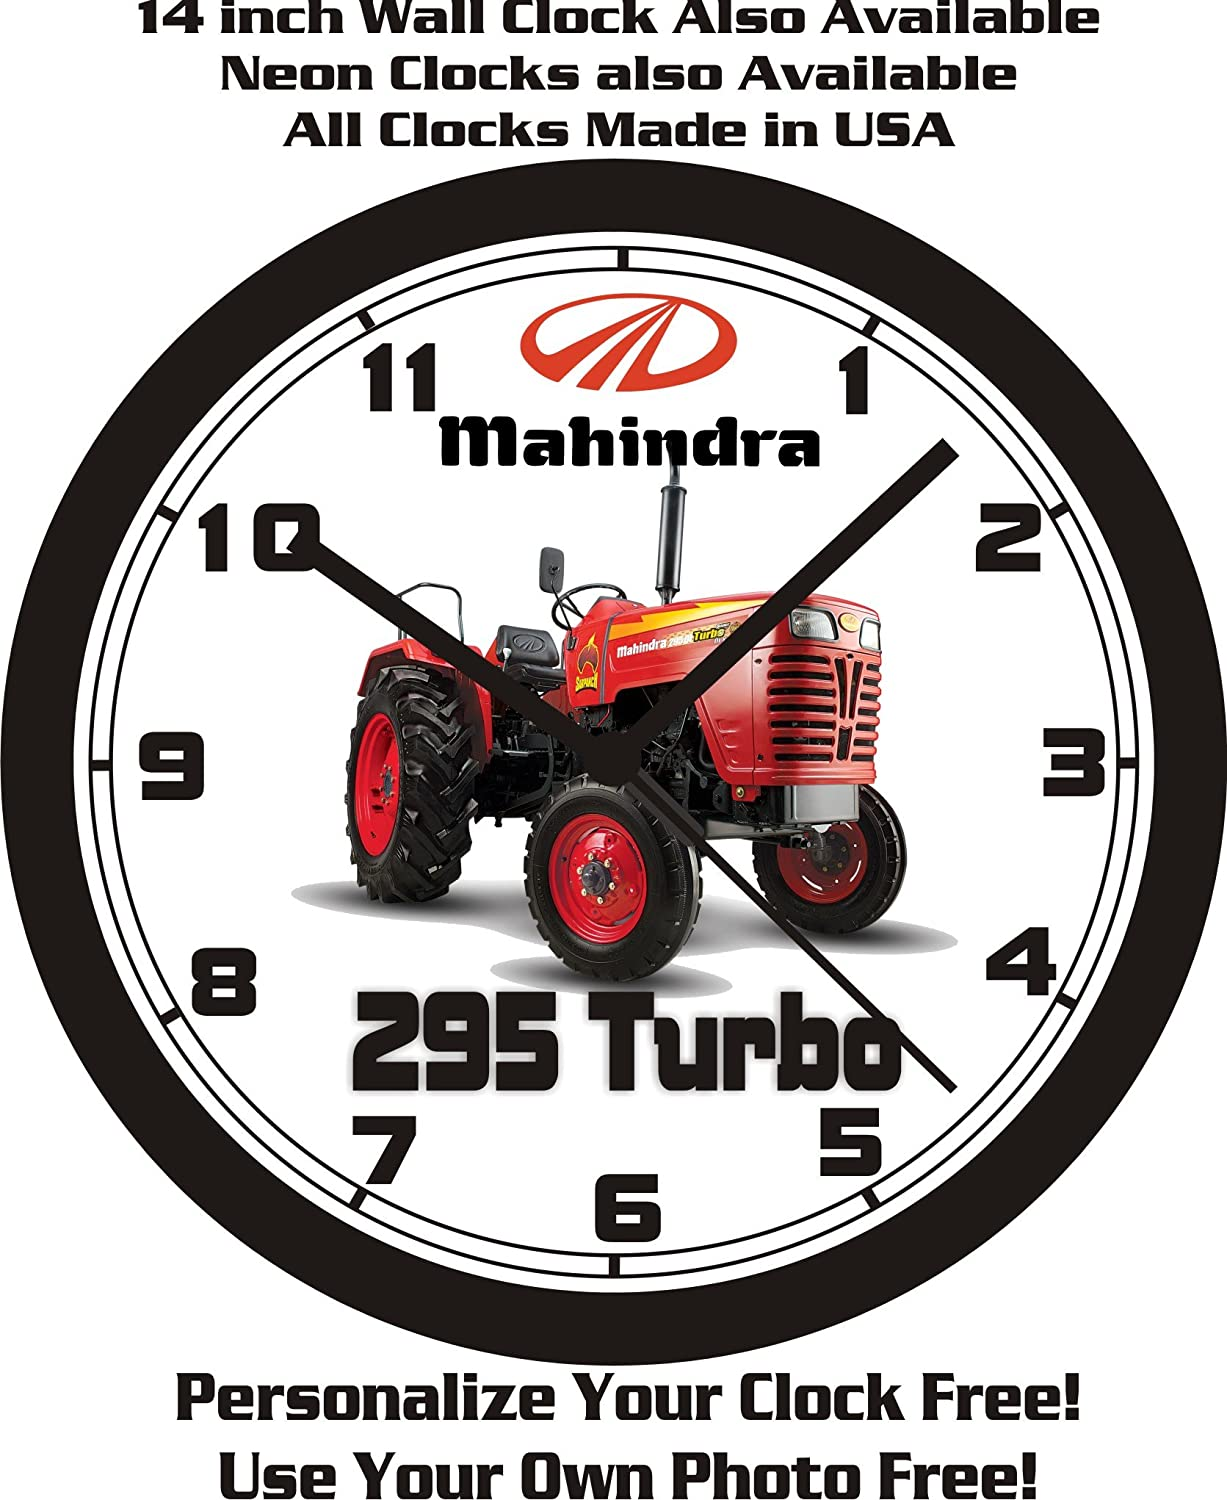 Mahindra 295 Turbo Tractor pared clock-free EE. UU. Barco.: Amazon.es: Hogar